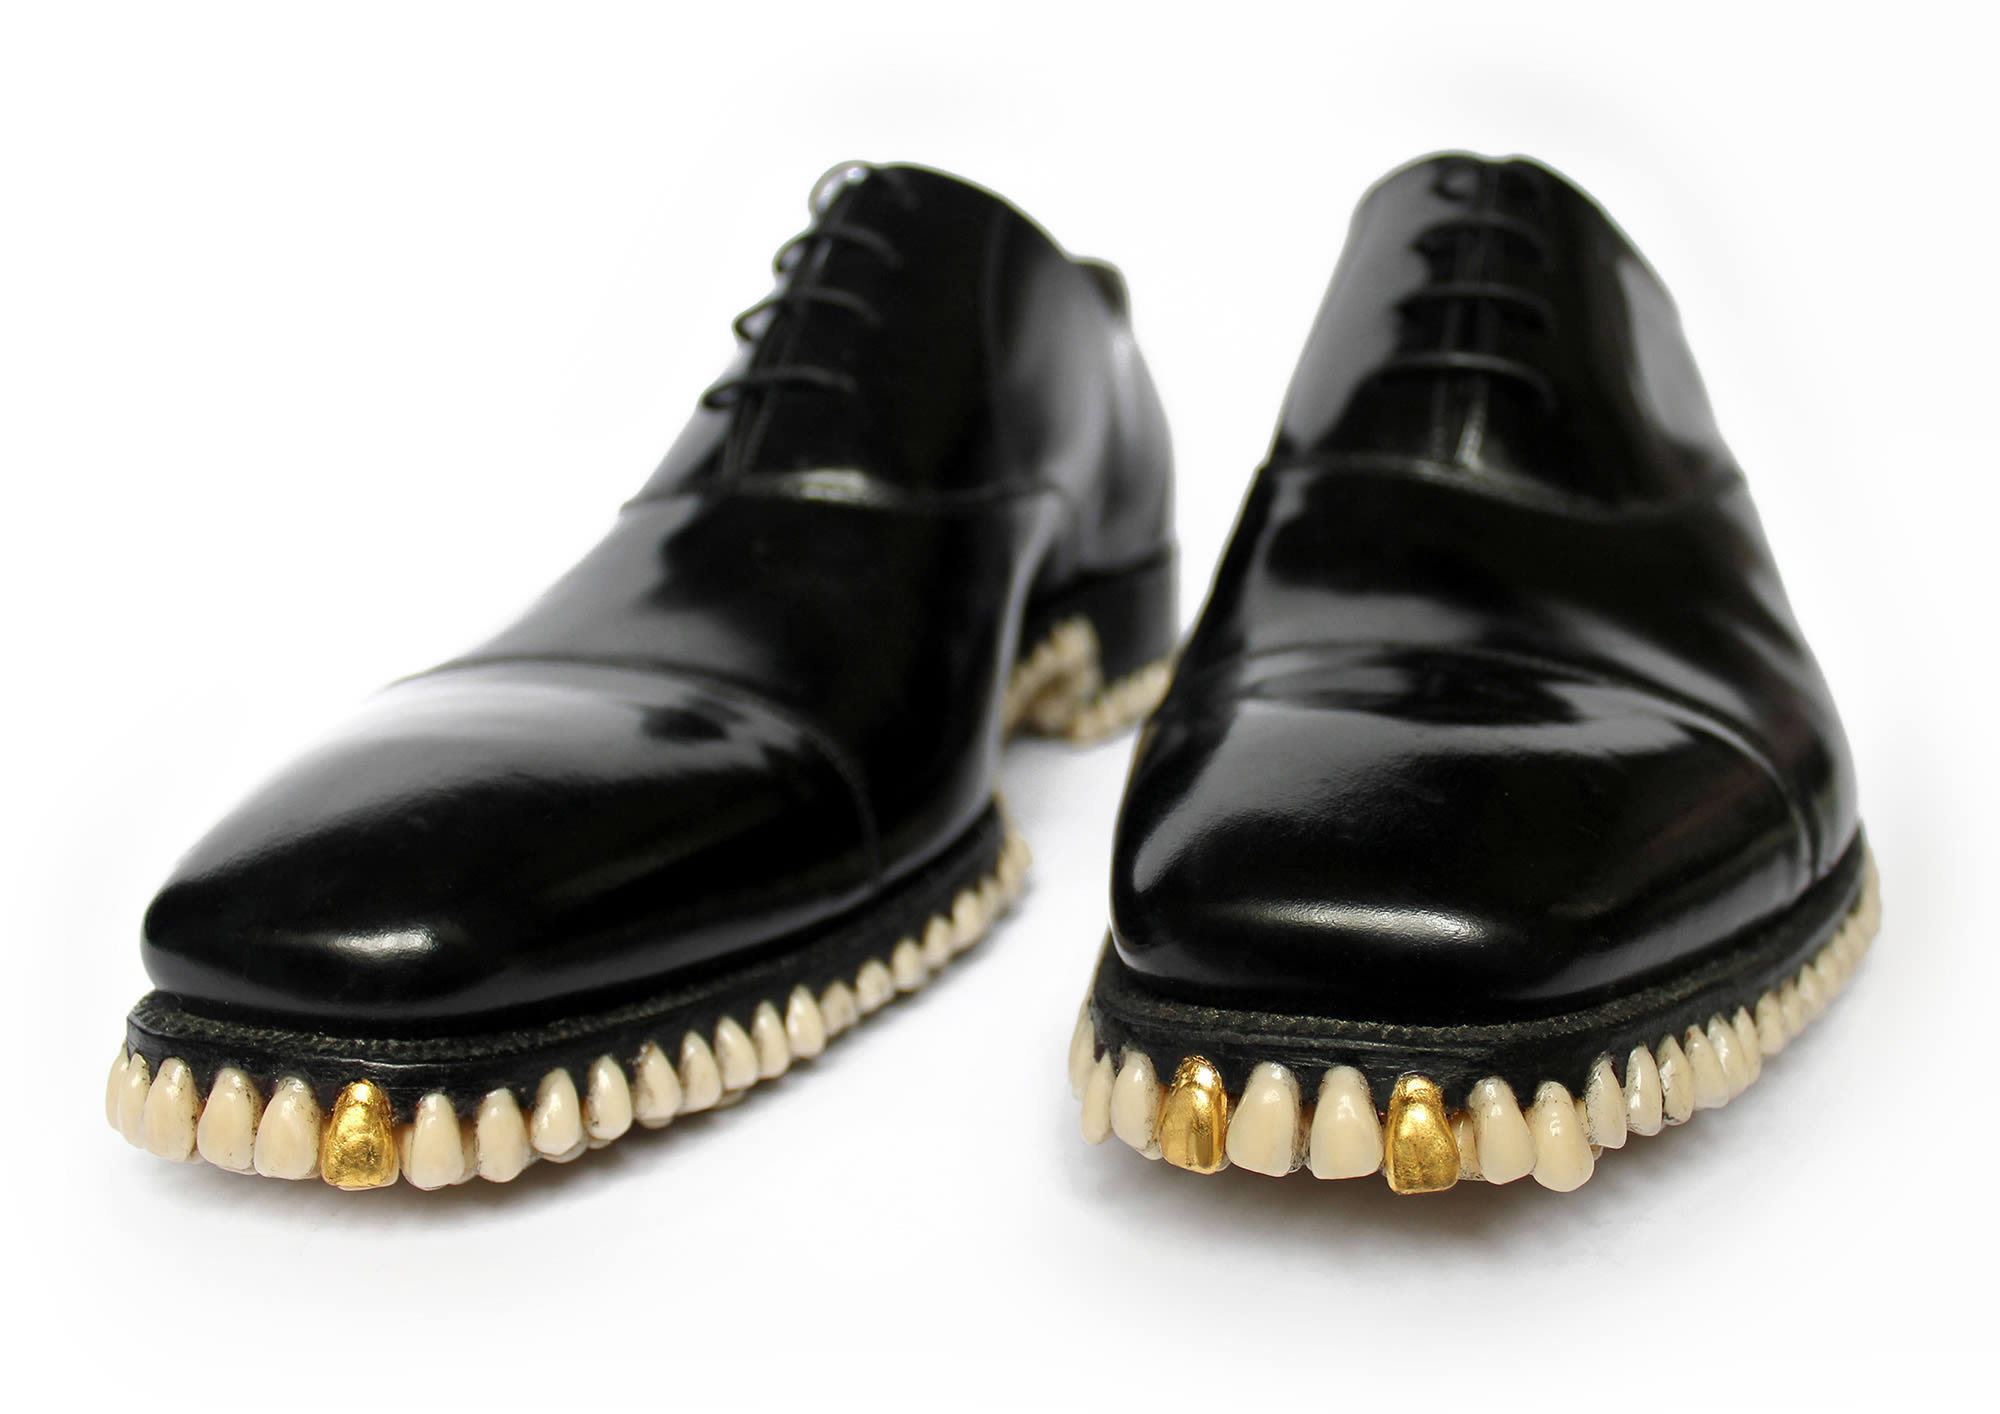 gold tooth, teeth as shoe soles, fantich and young